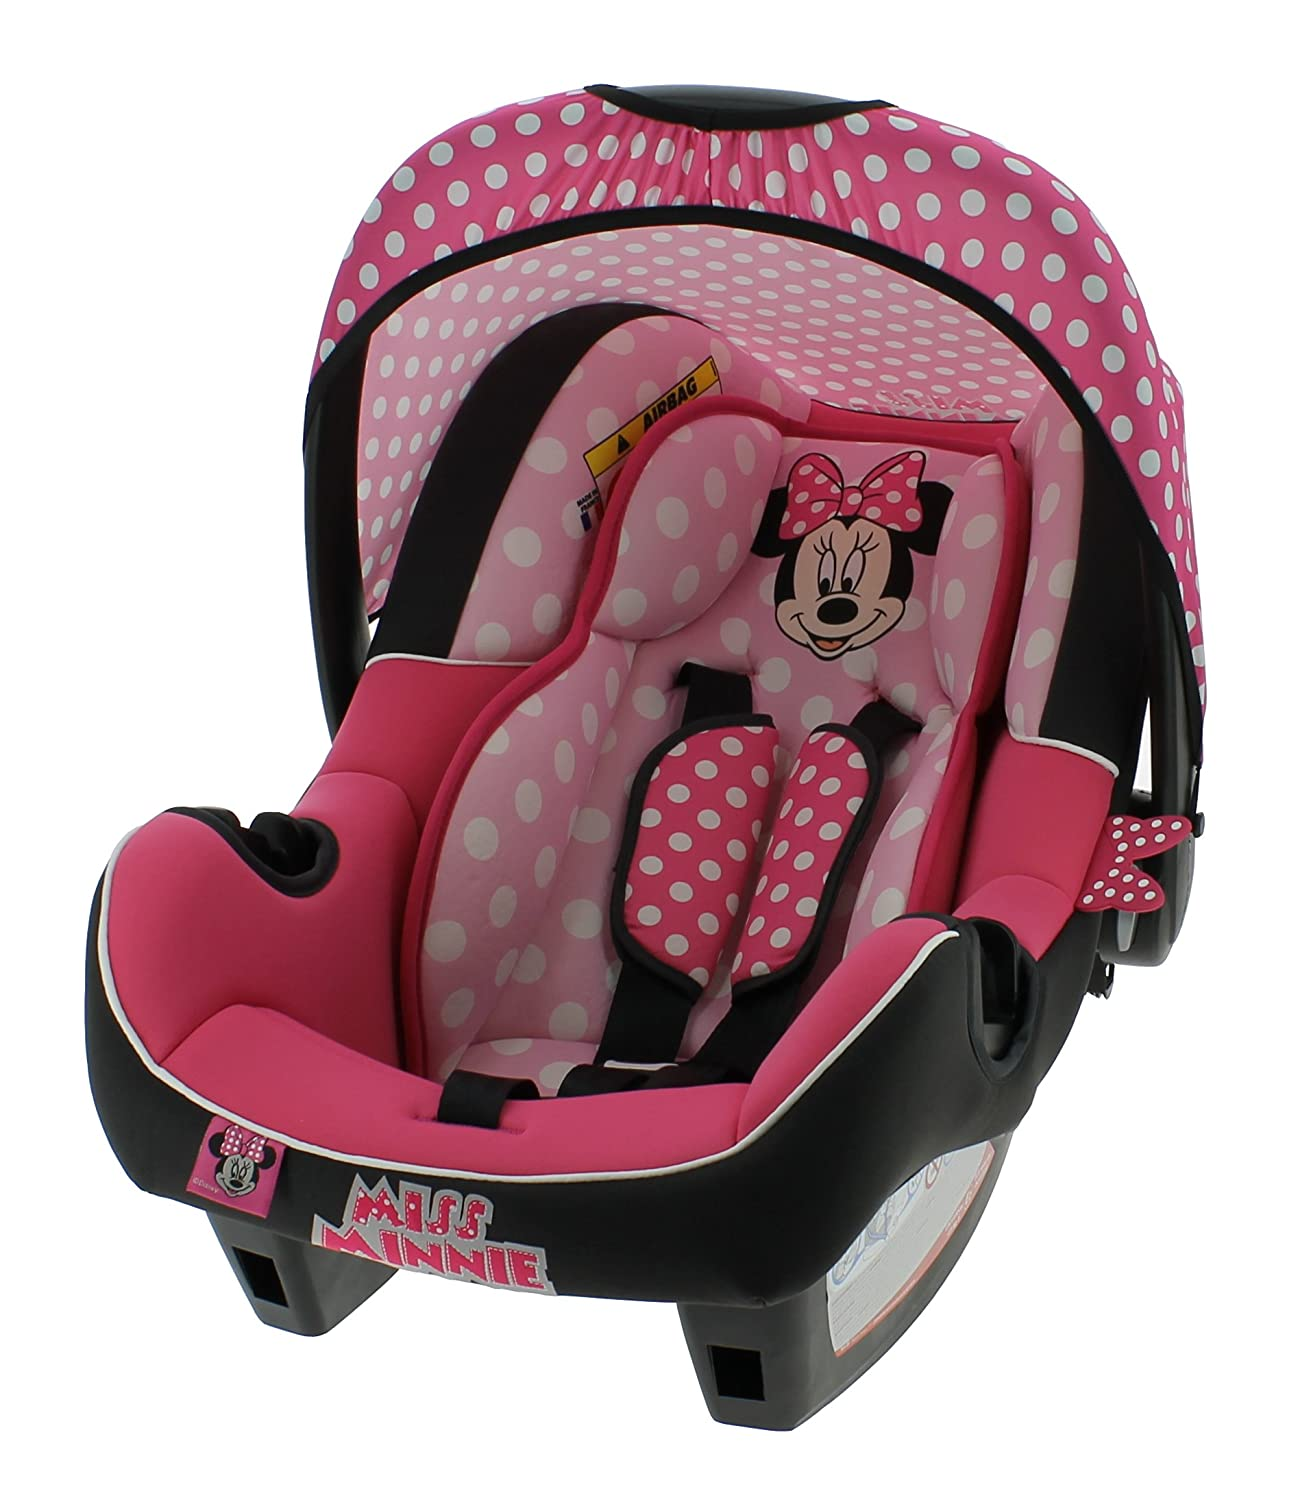 Disney Minnie Mouse Beone SP Infant Carrier Car Seat 496604